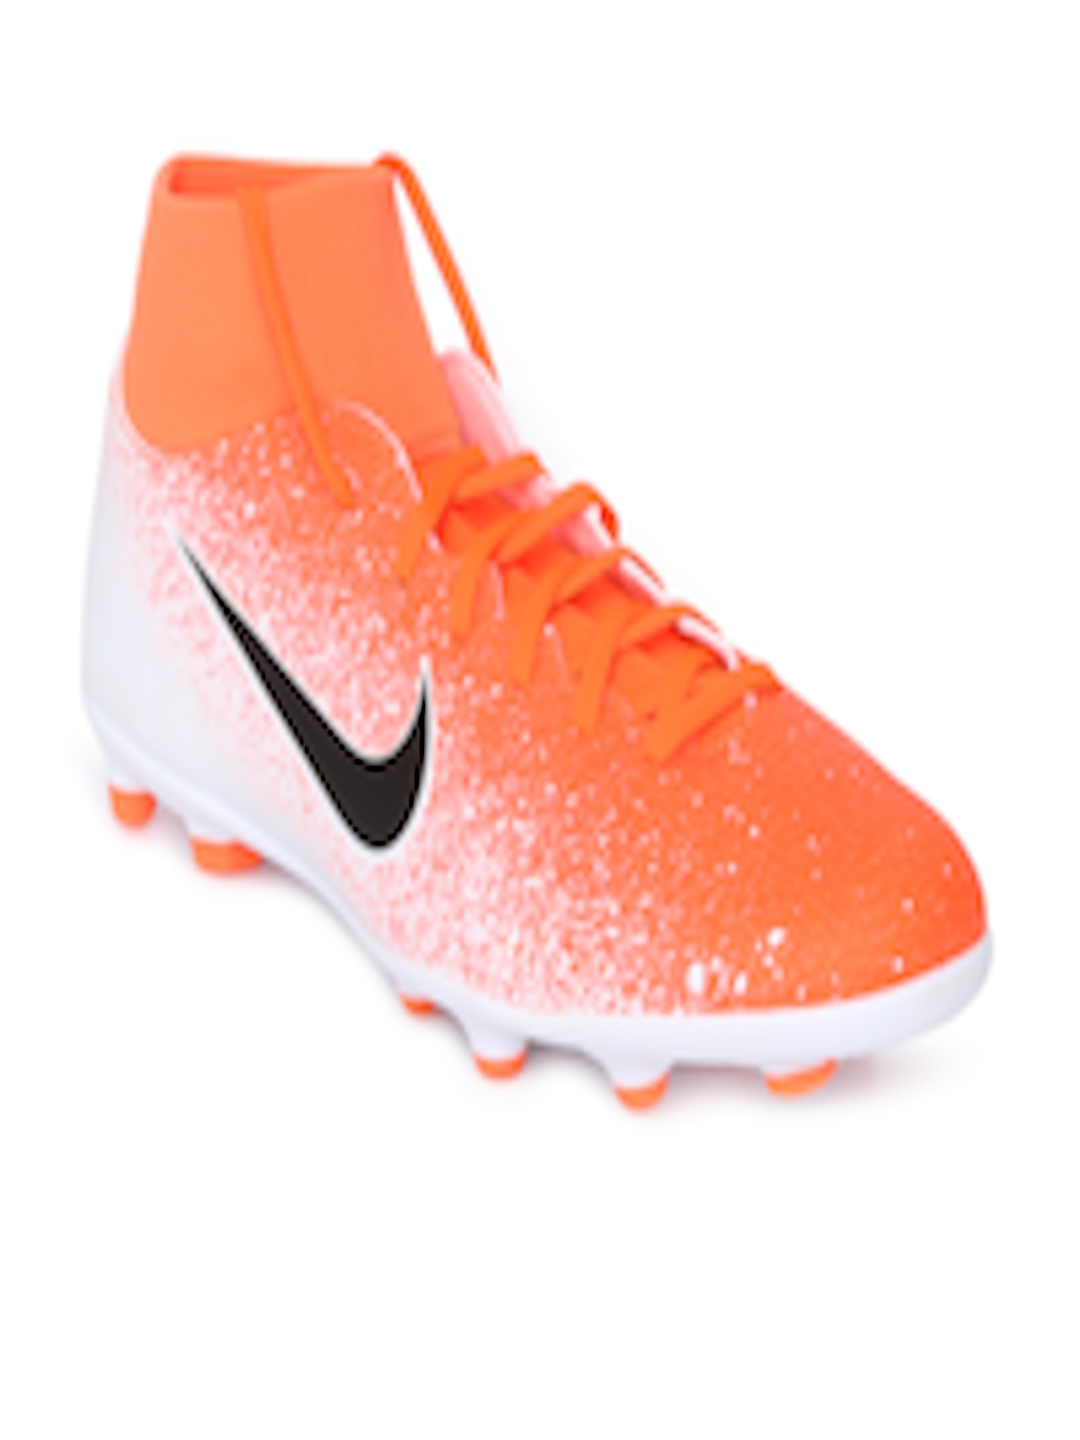 new concept cb812 653f9 Buy Nike Unisex SUPERFLY 6 CLUB FG/MG Orange Synthetic Mid Top Football  Shoes - - Footwear for Unisex